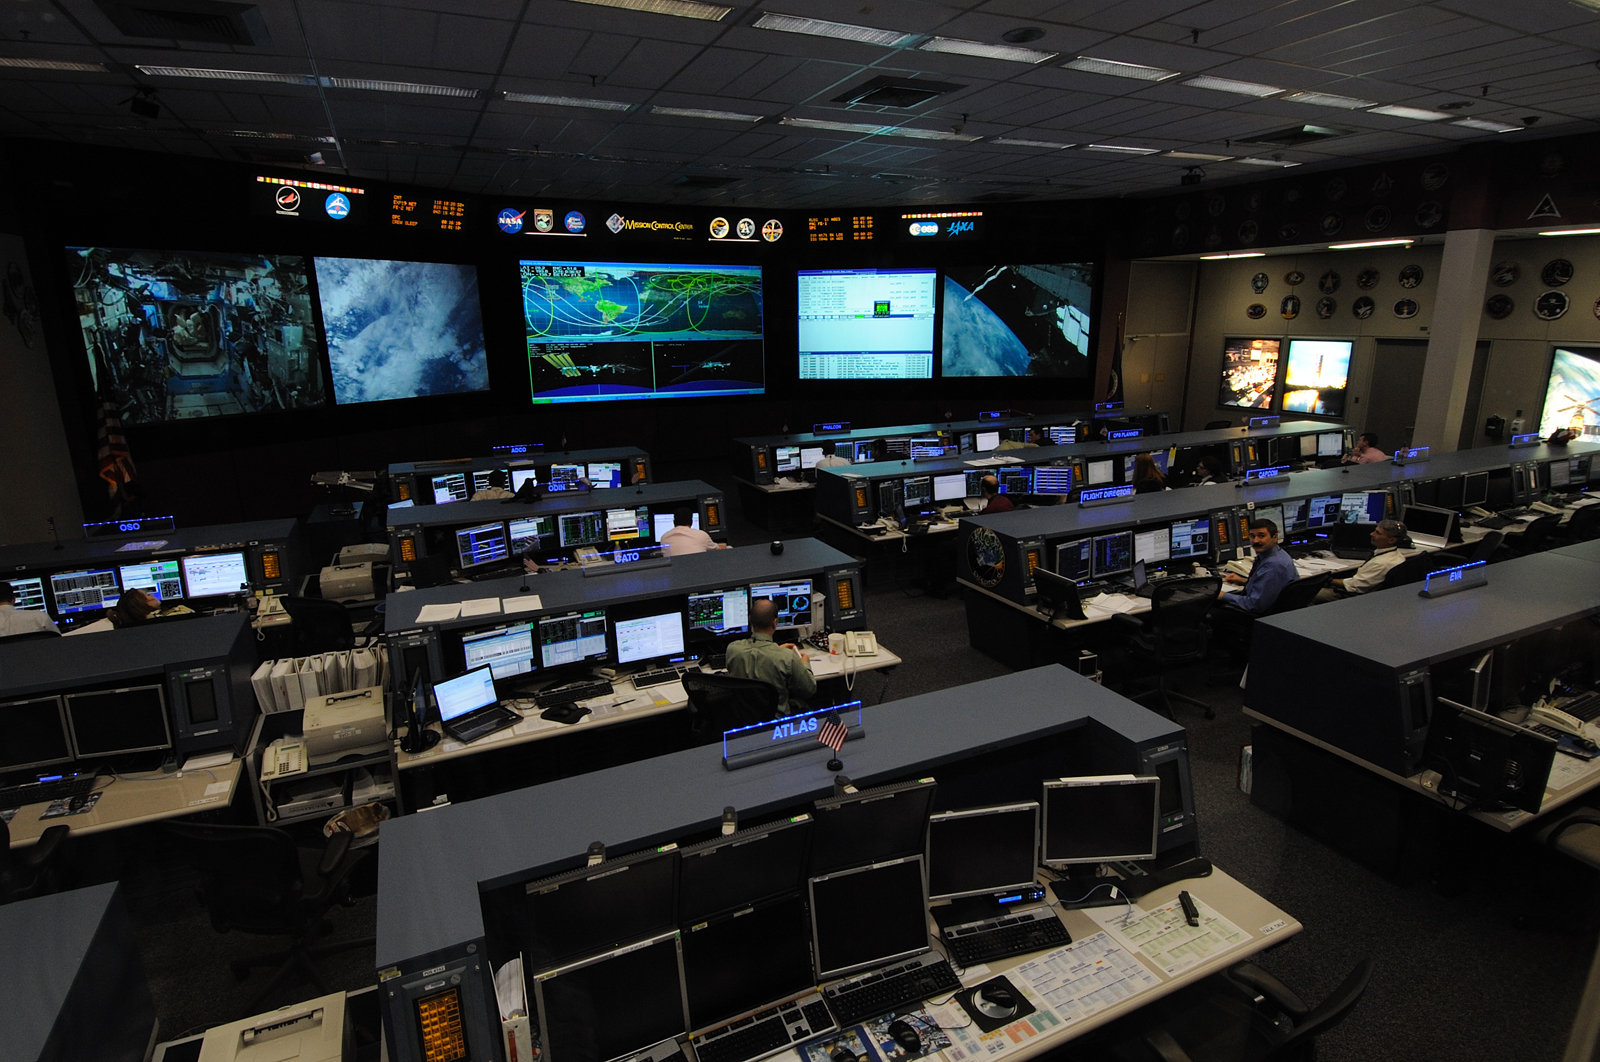 Iss Loses Communication With Houston Mission Control